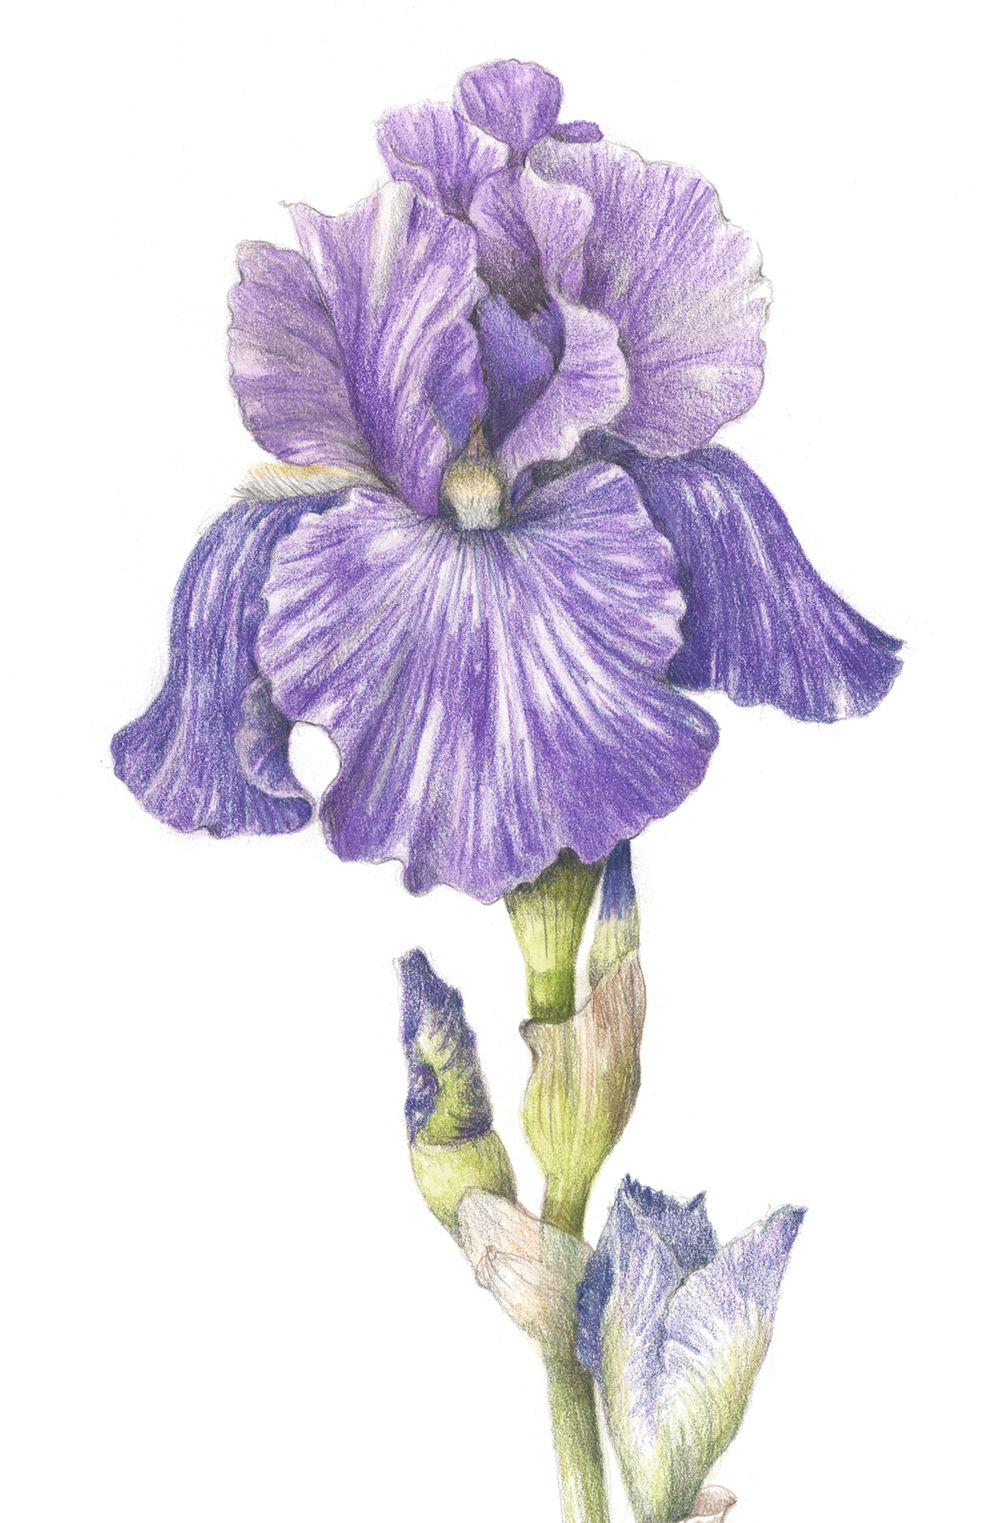 Bearded Iris. From the collection of botanical